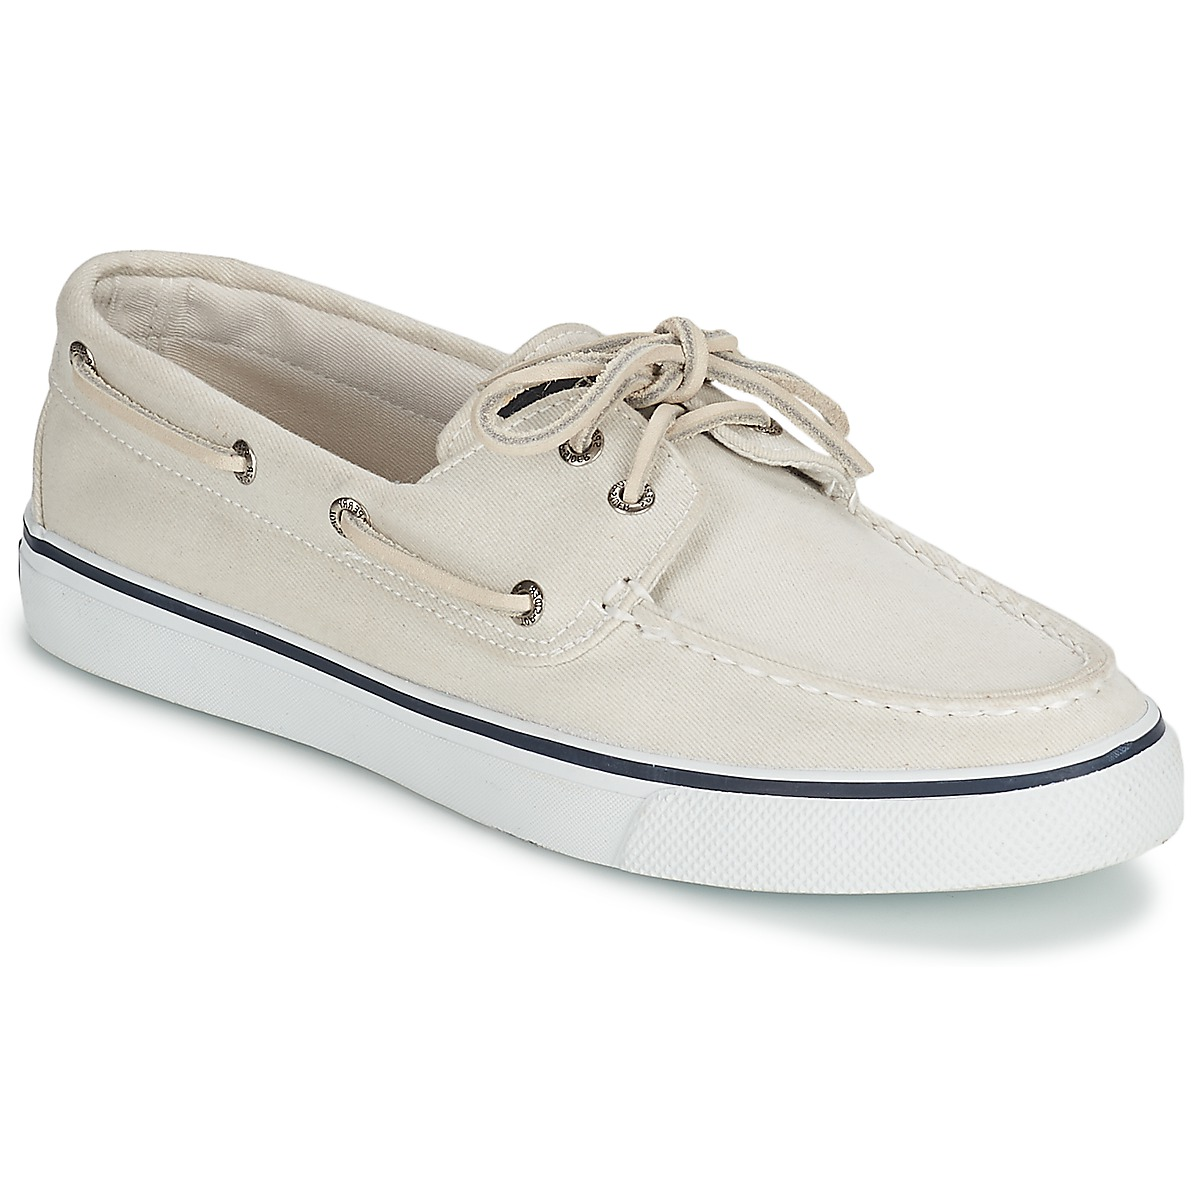 Sperry Top-Sider BAHAMA Weiss